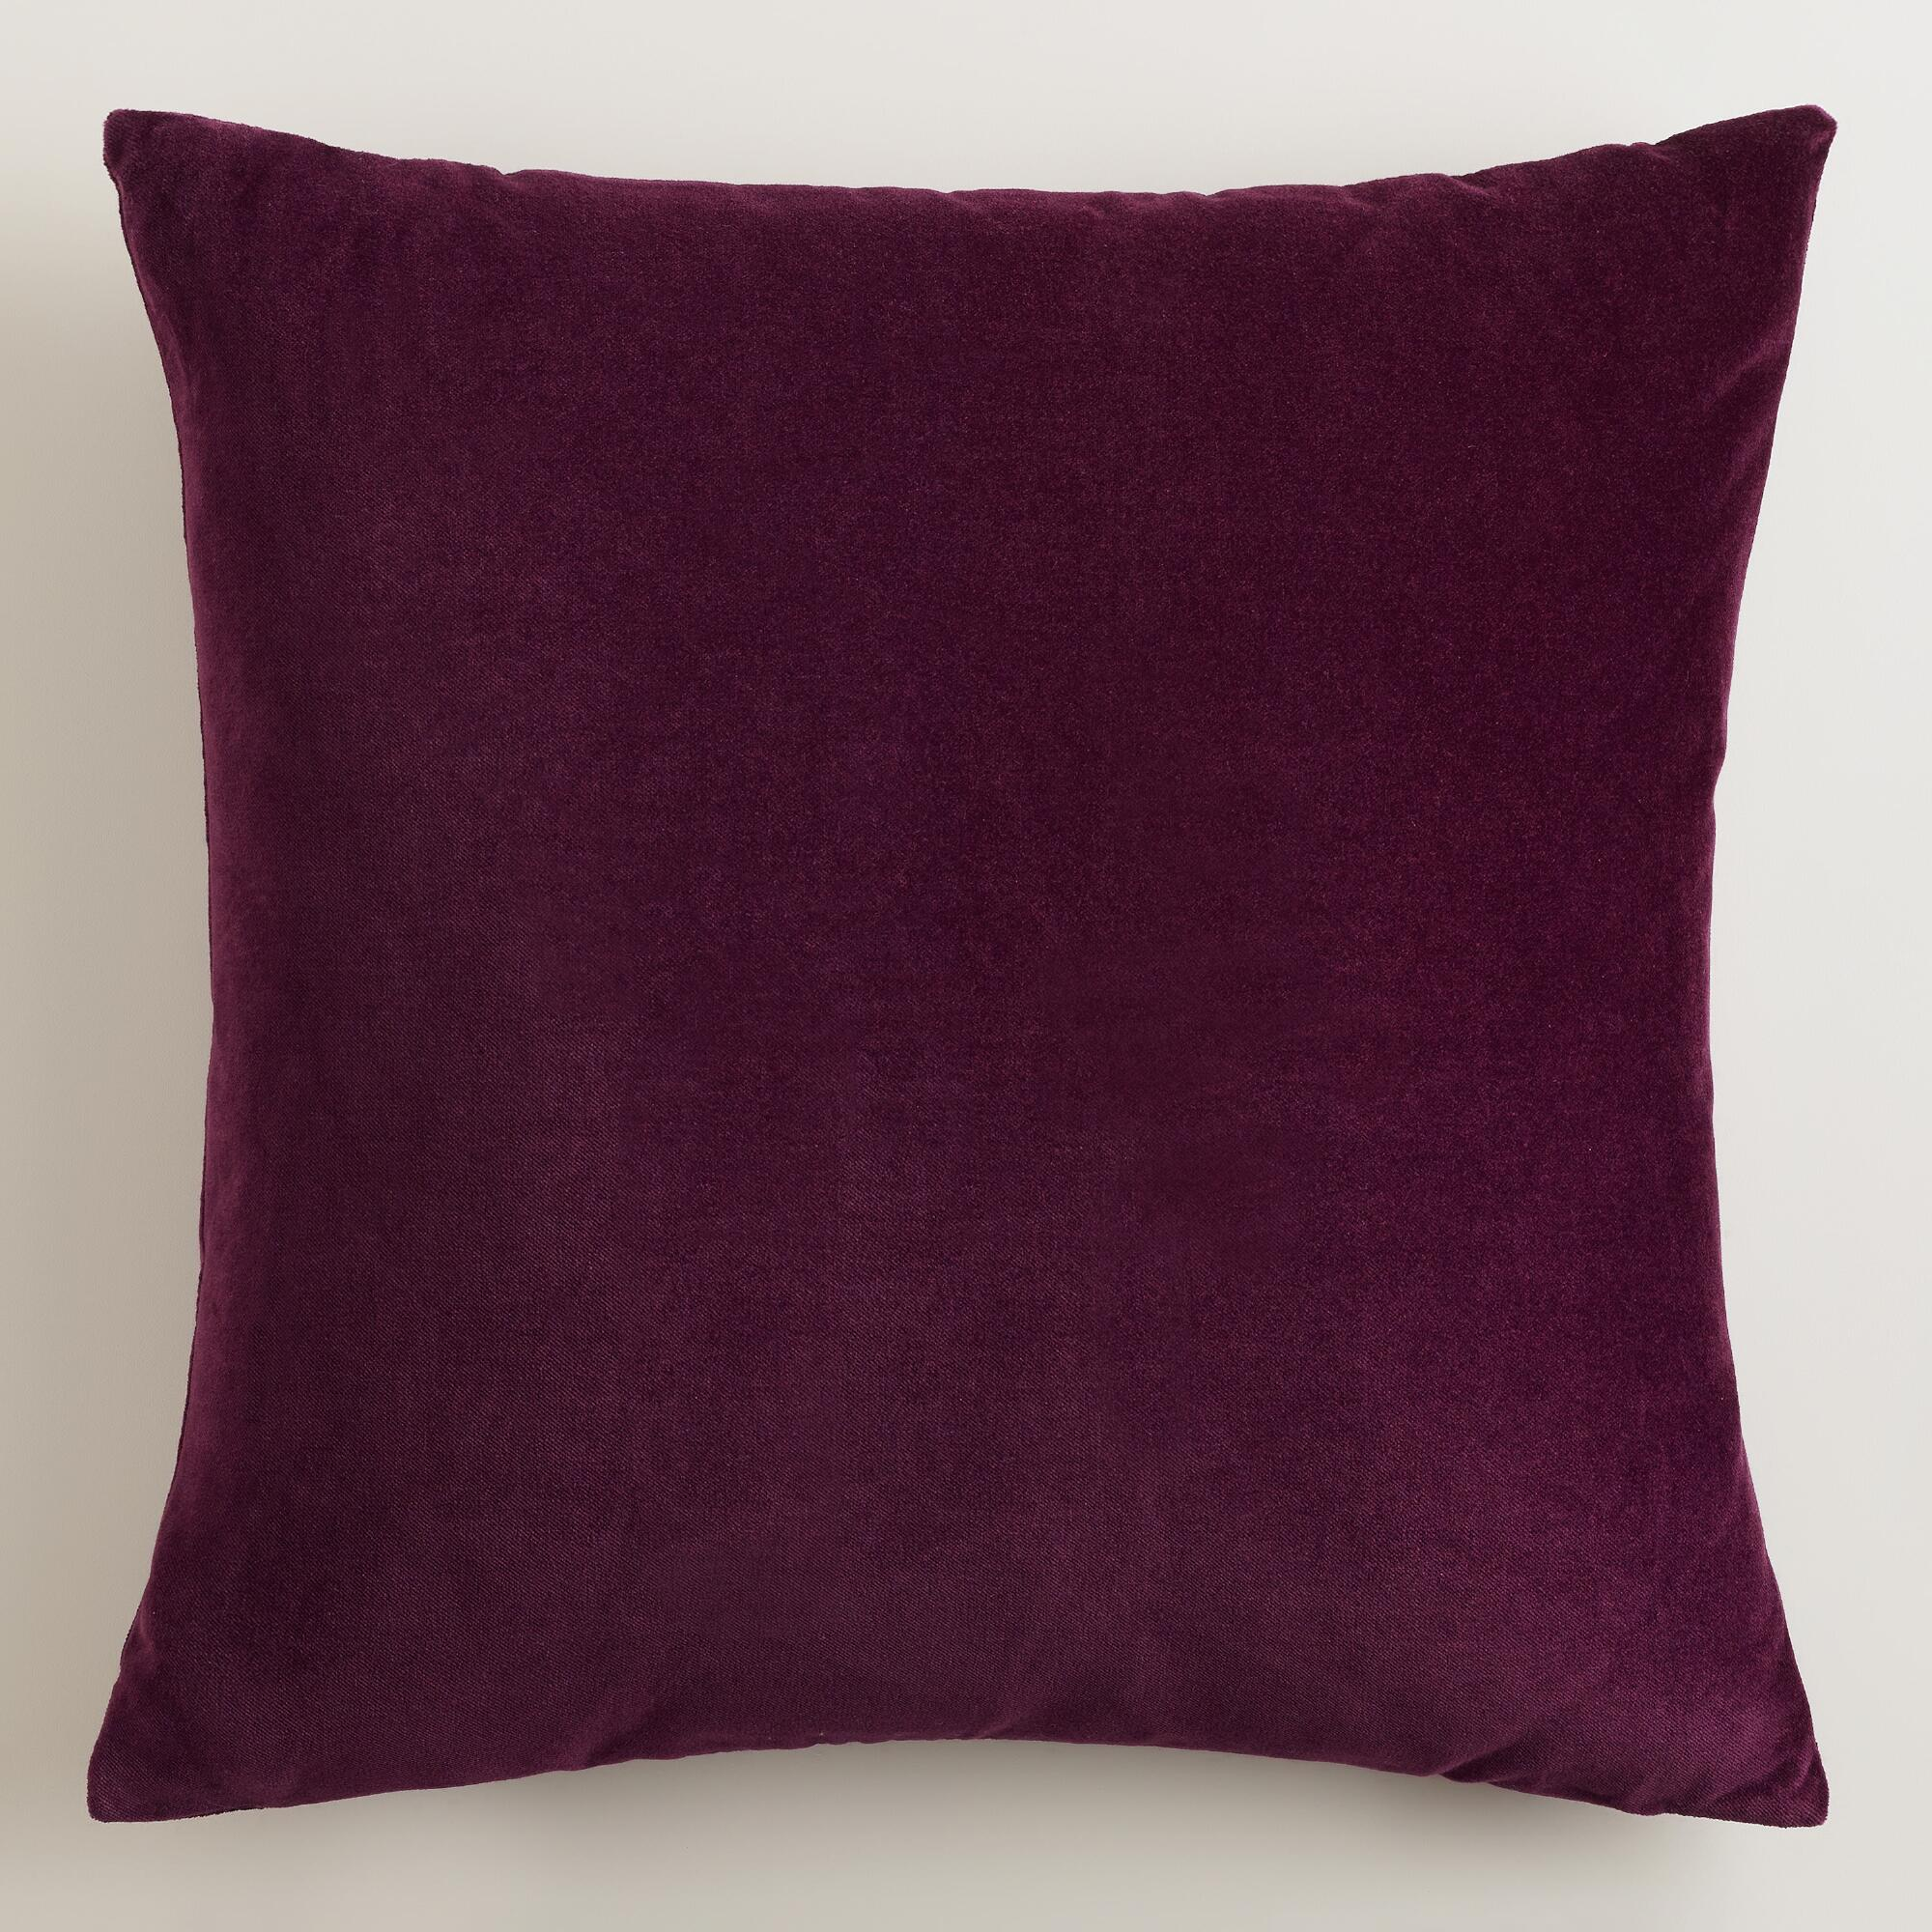 Purple Velvet Decorative Pillows : Potent Purple Velvet Throw Pillows World Market